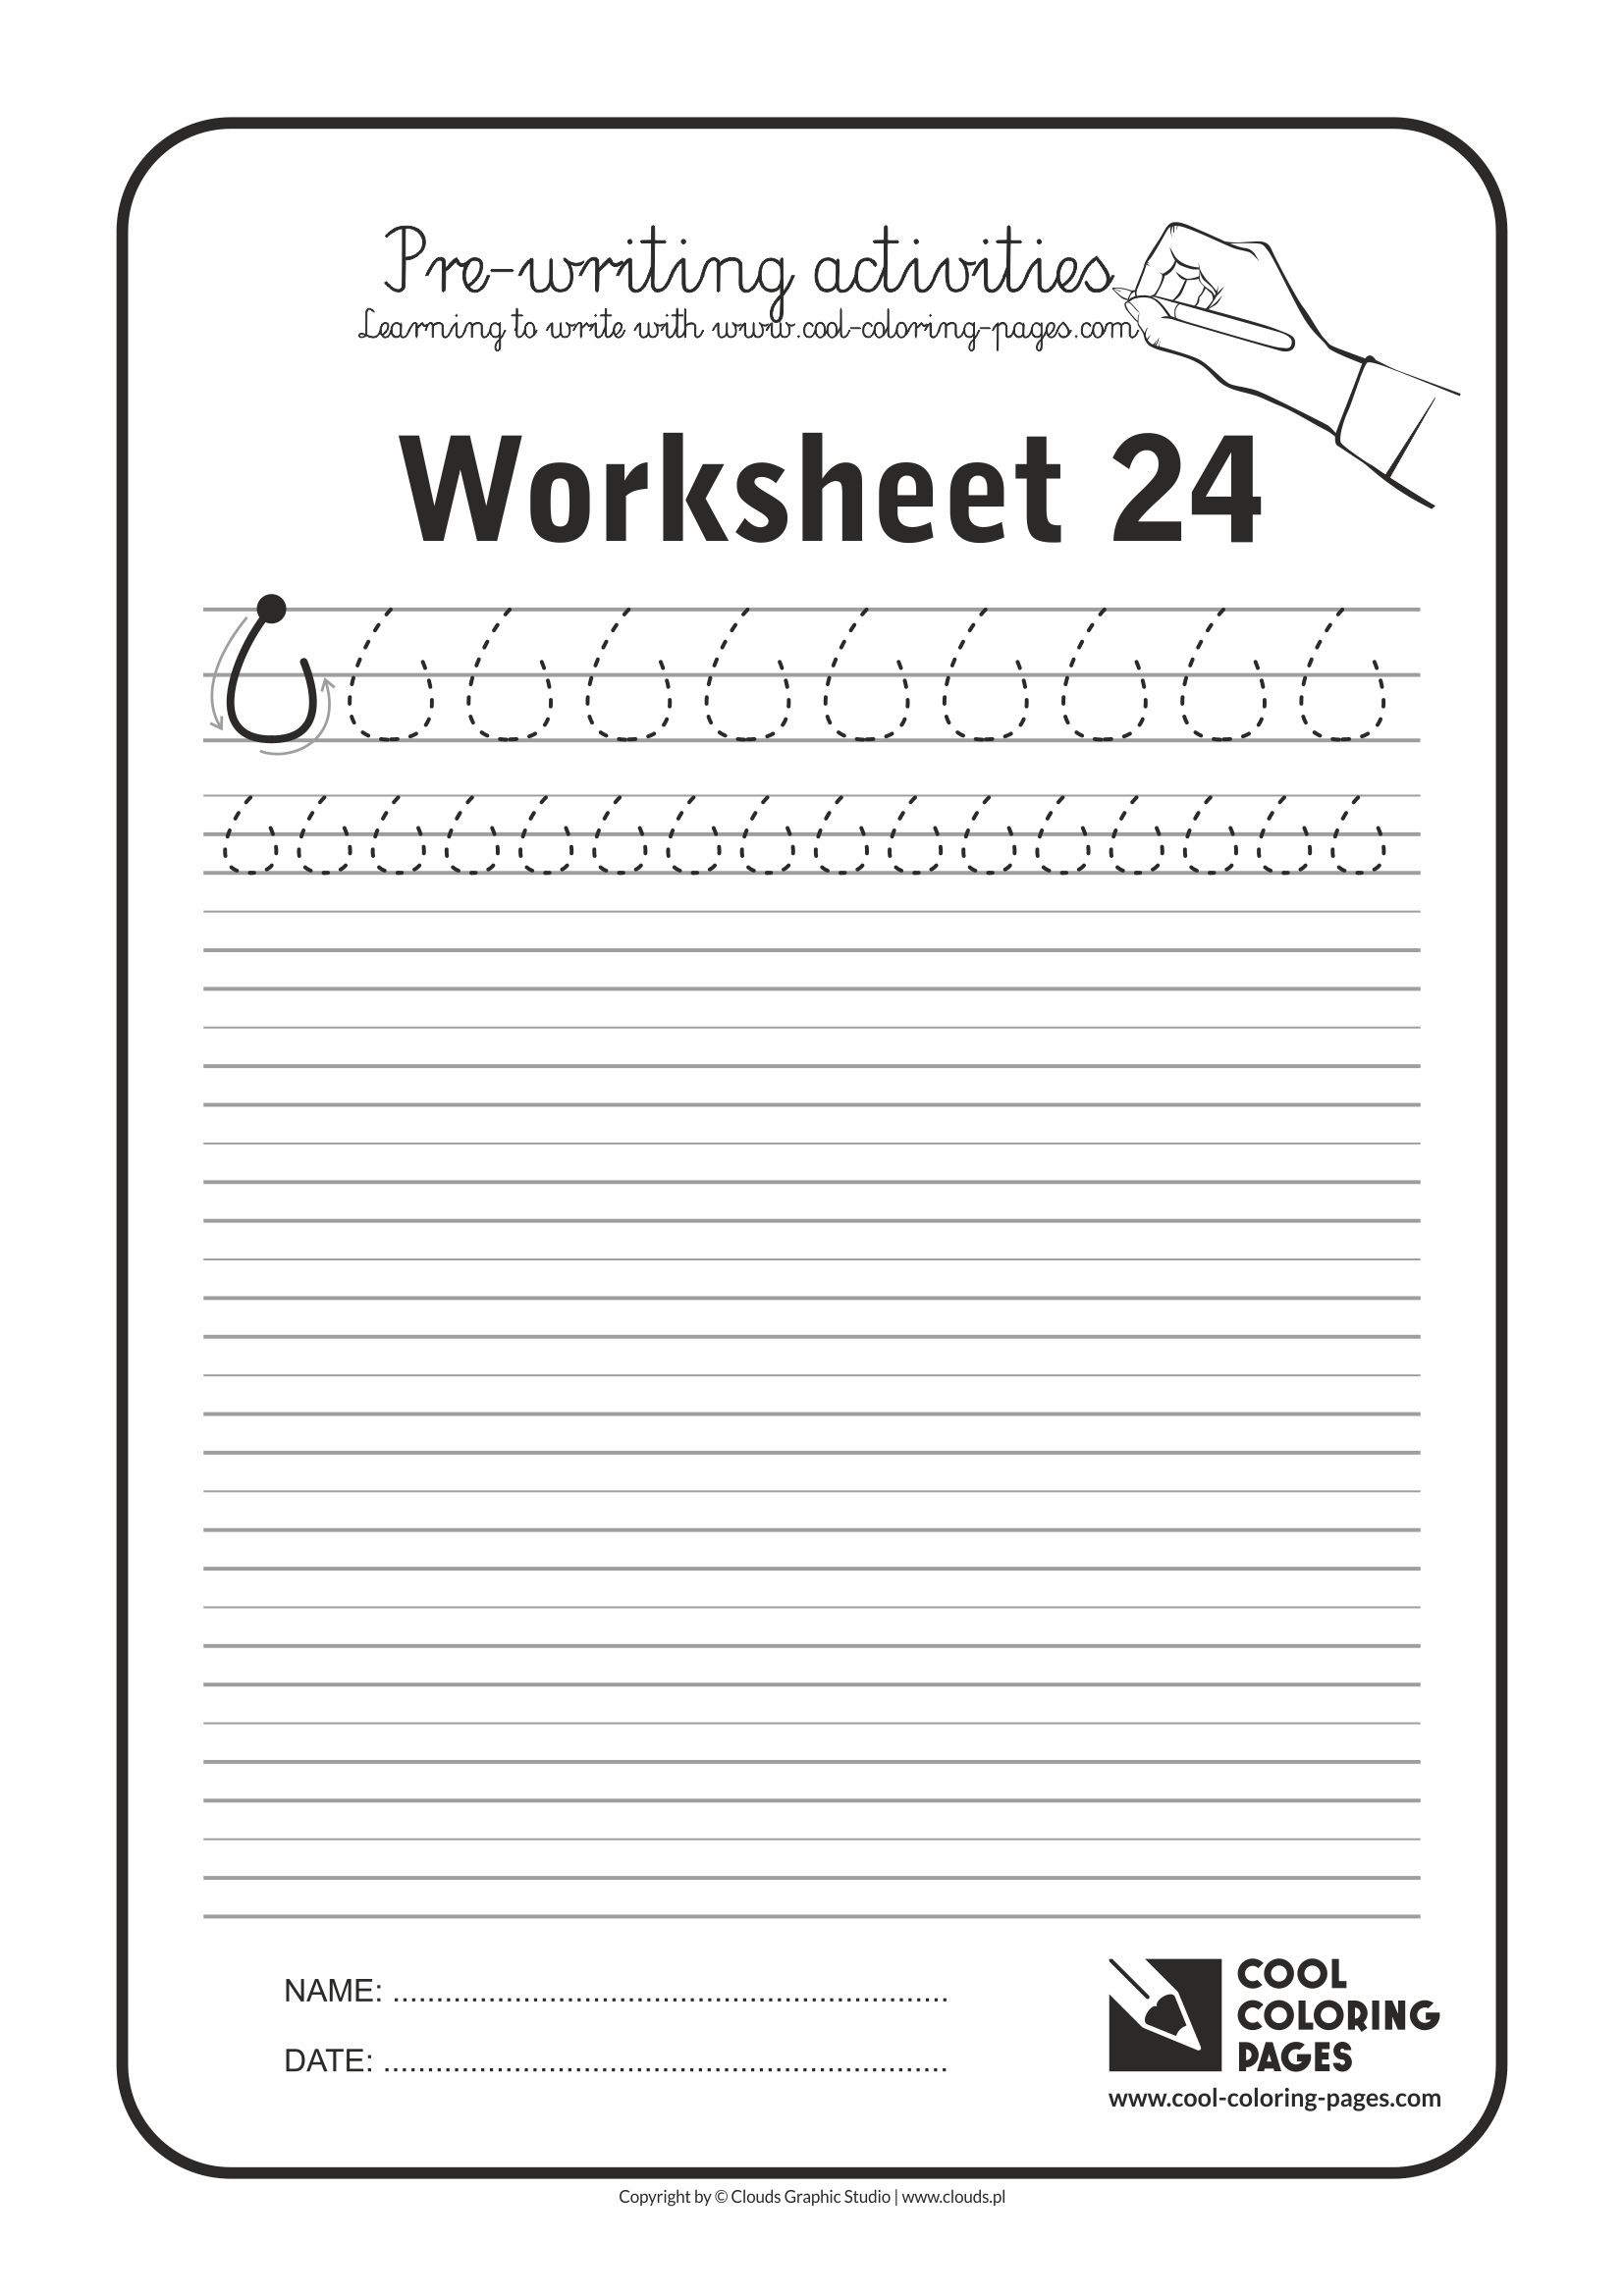 Cool Coloring Pages / Pre-writing activities / Worksheet no.24